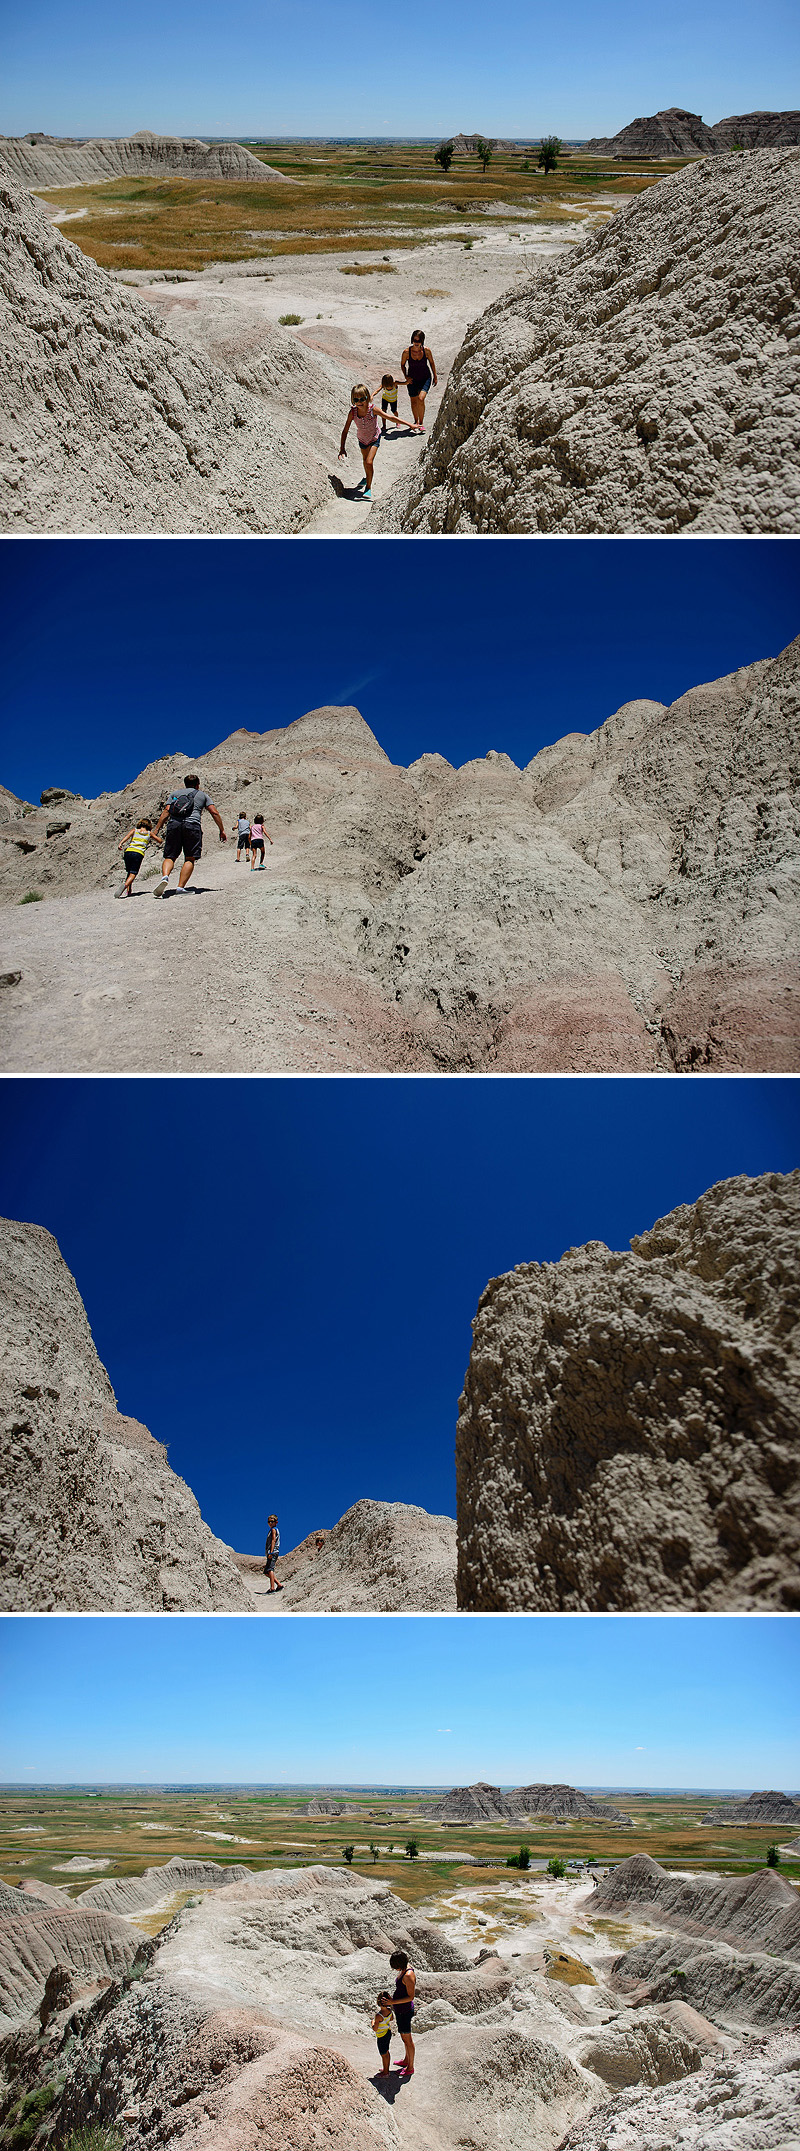 incredible scenic views on hike in badlands